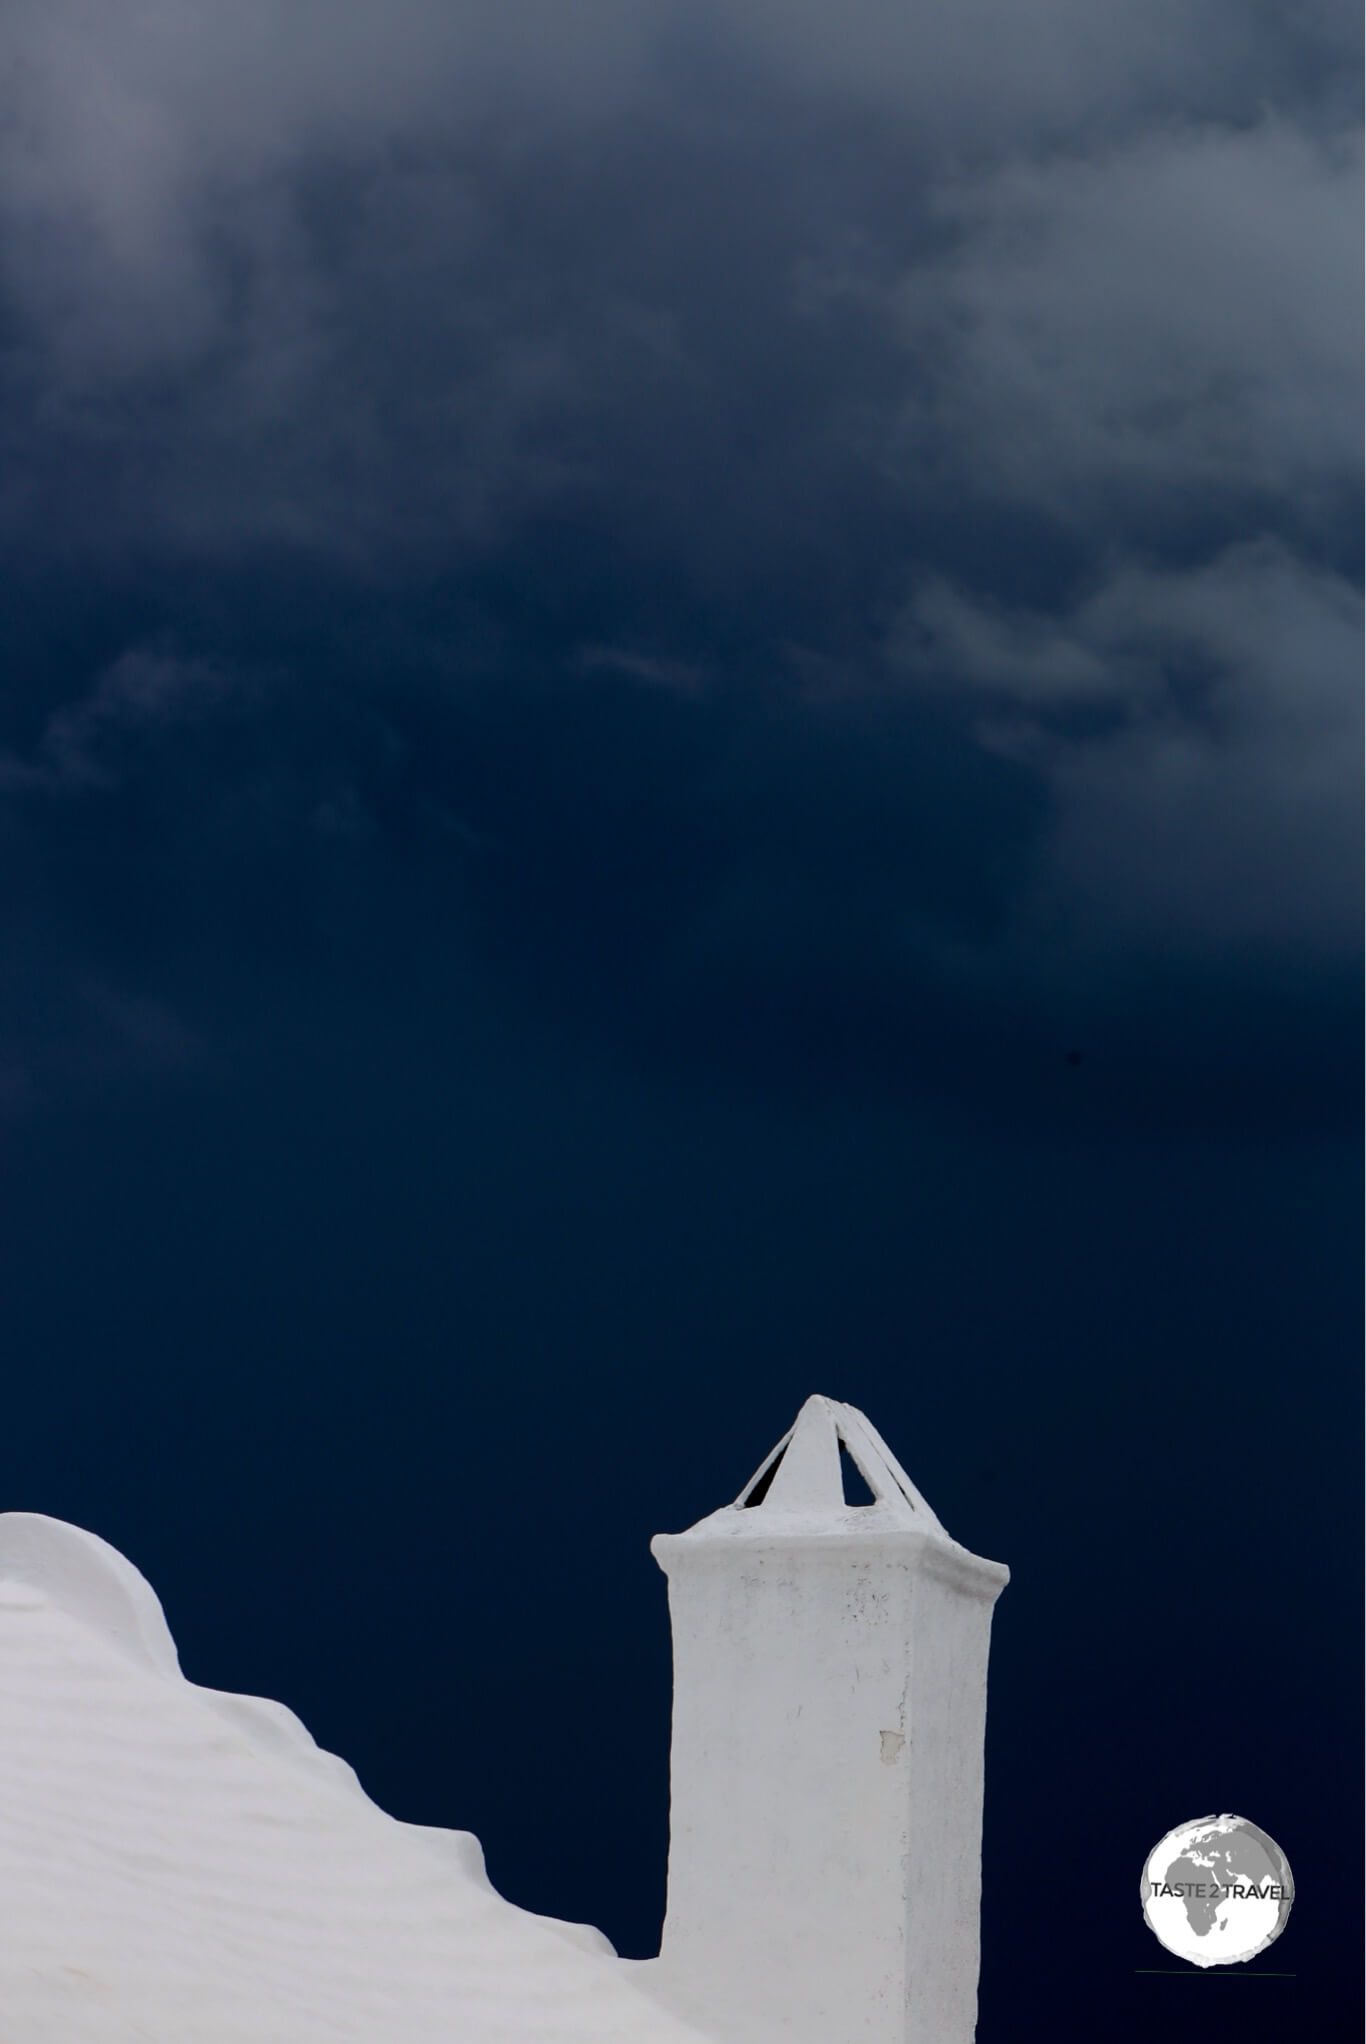 A white-painted, stone roof contrasts starkly against a stormy sky.